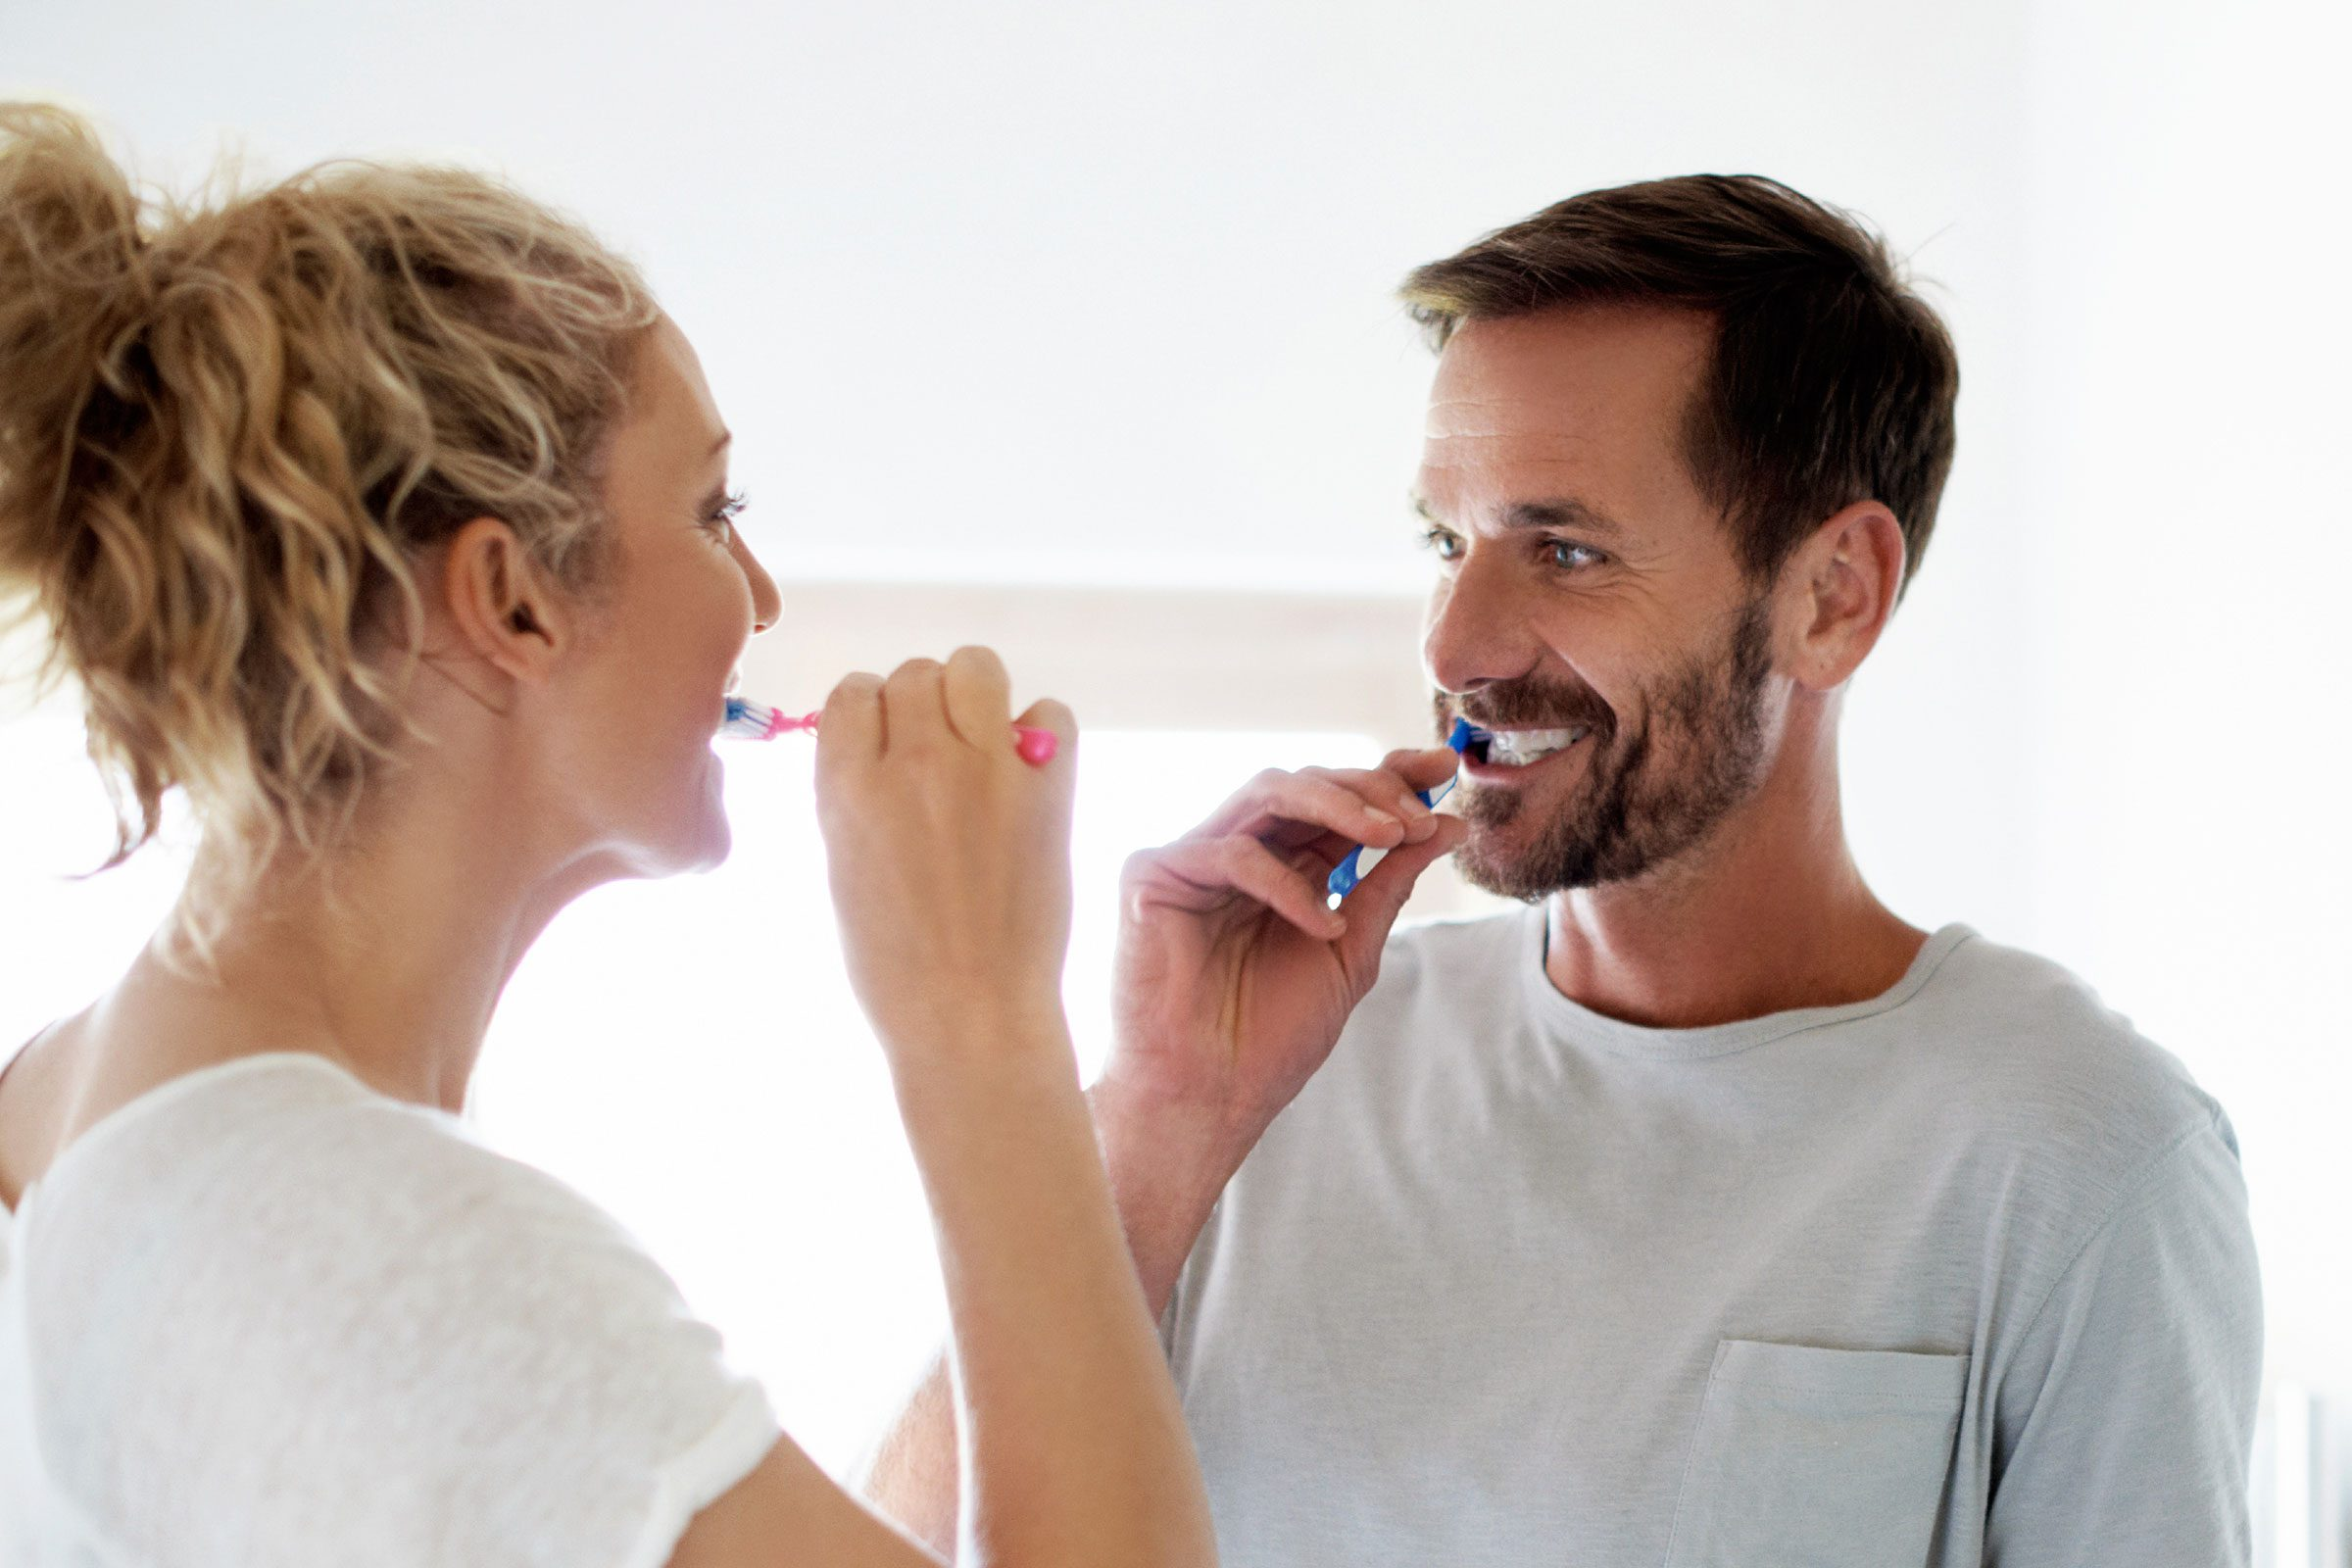 Brush teeth with your non-dominant hand.